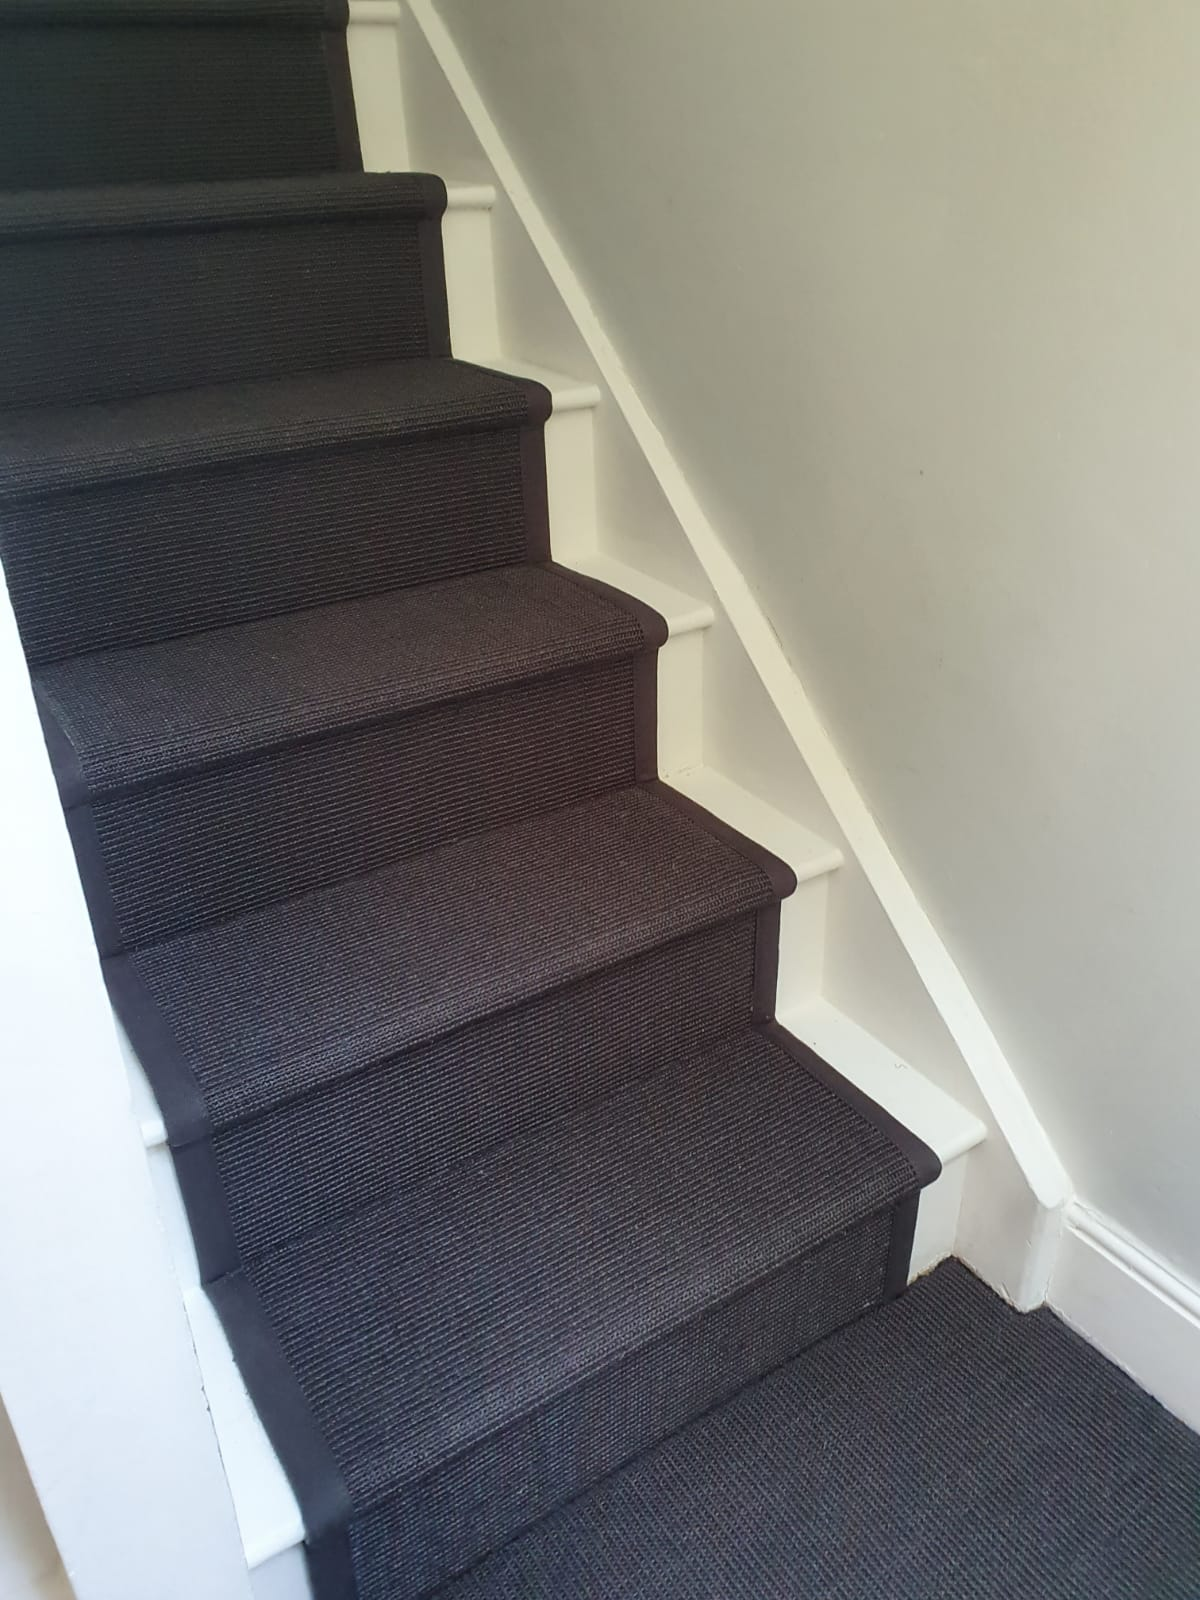 Crucial Trading Sisal Small Boucle Accents Black C714 Carpet in Fulham 1